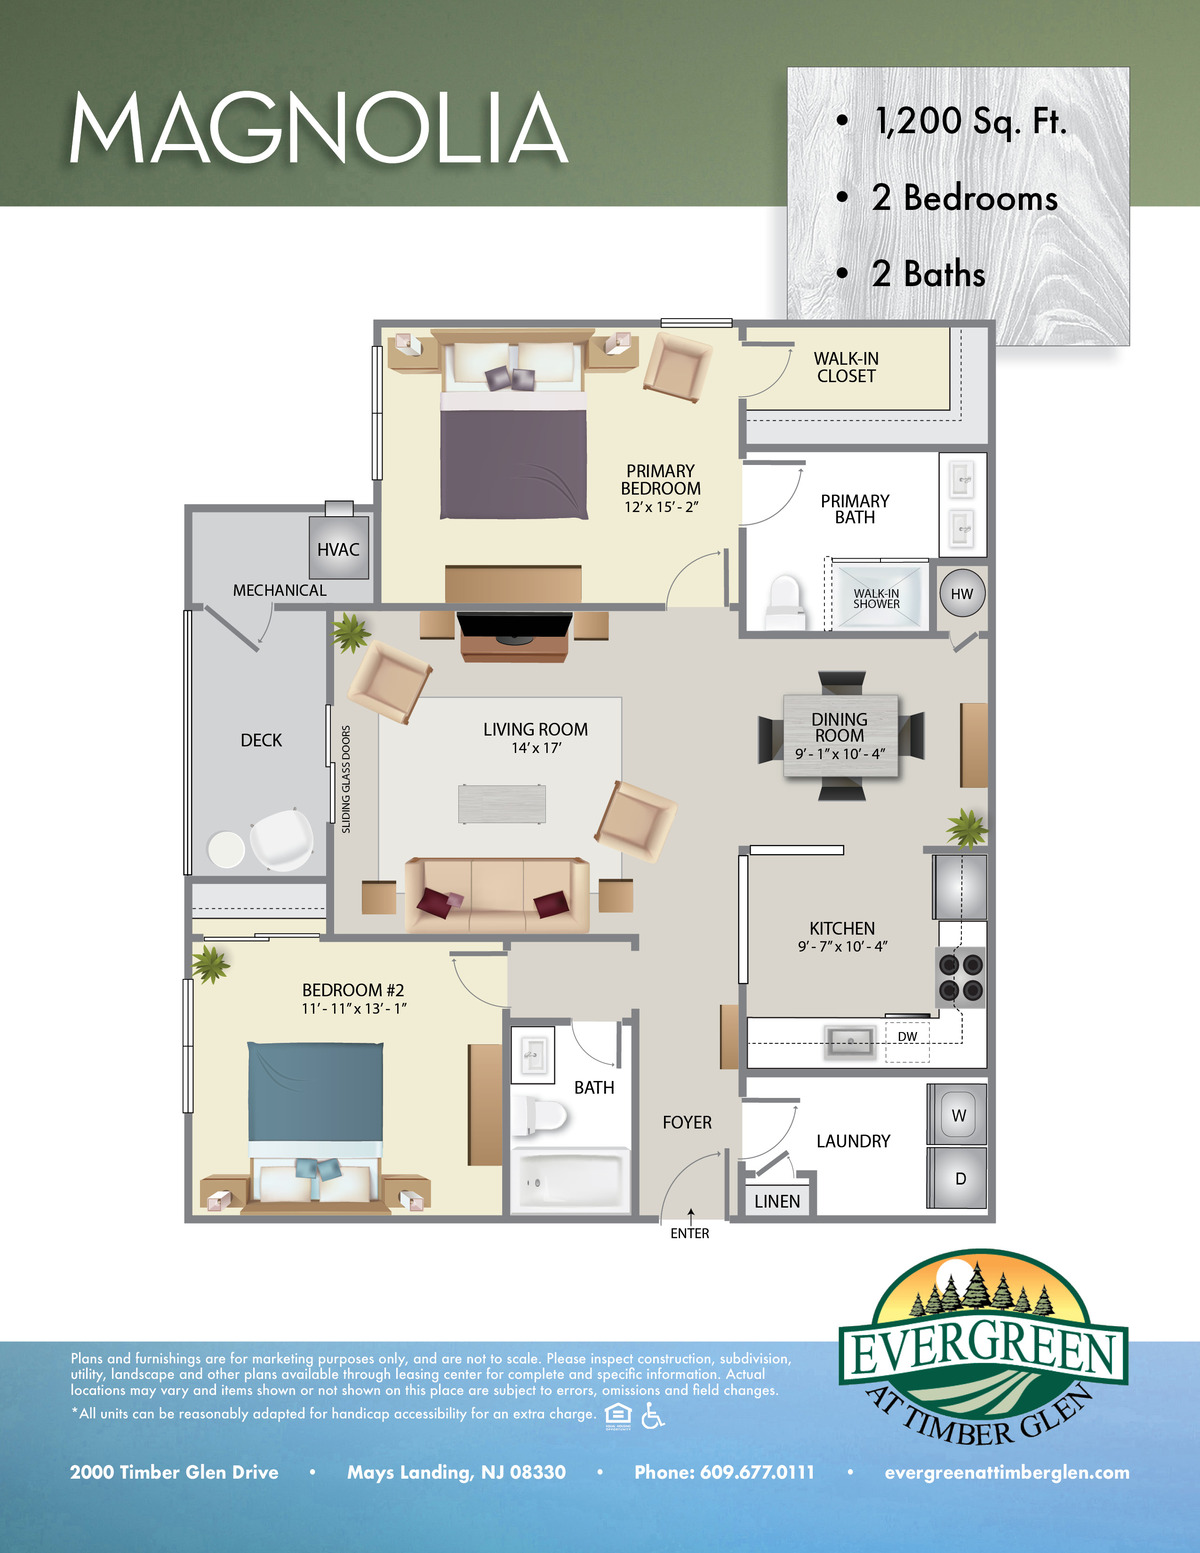 Evergreen At Timberglen Floor Plan Magnolia